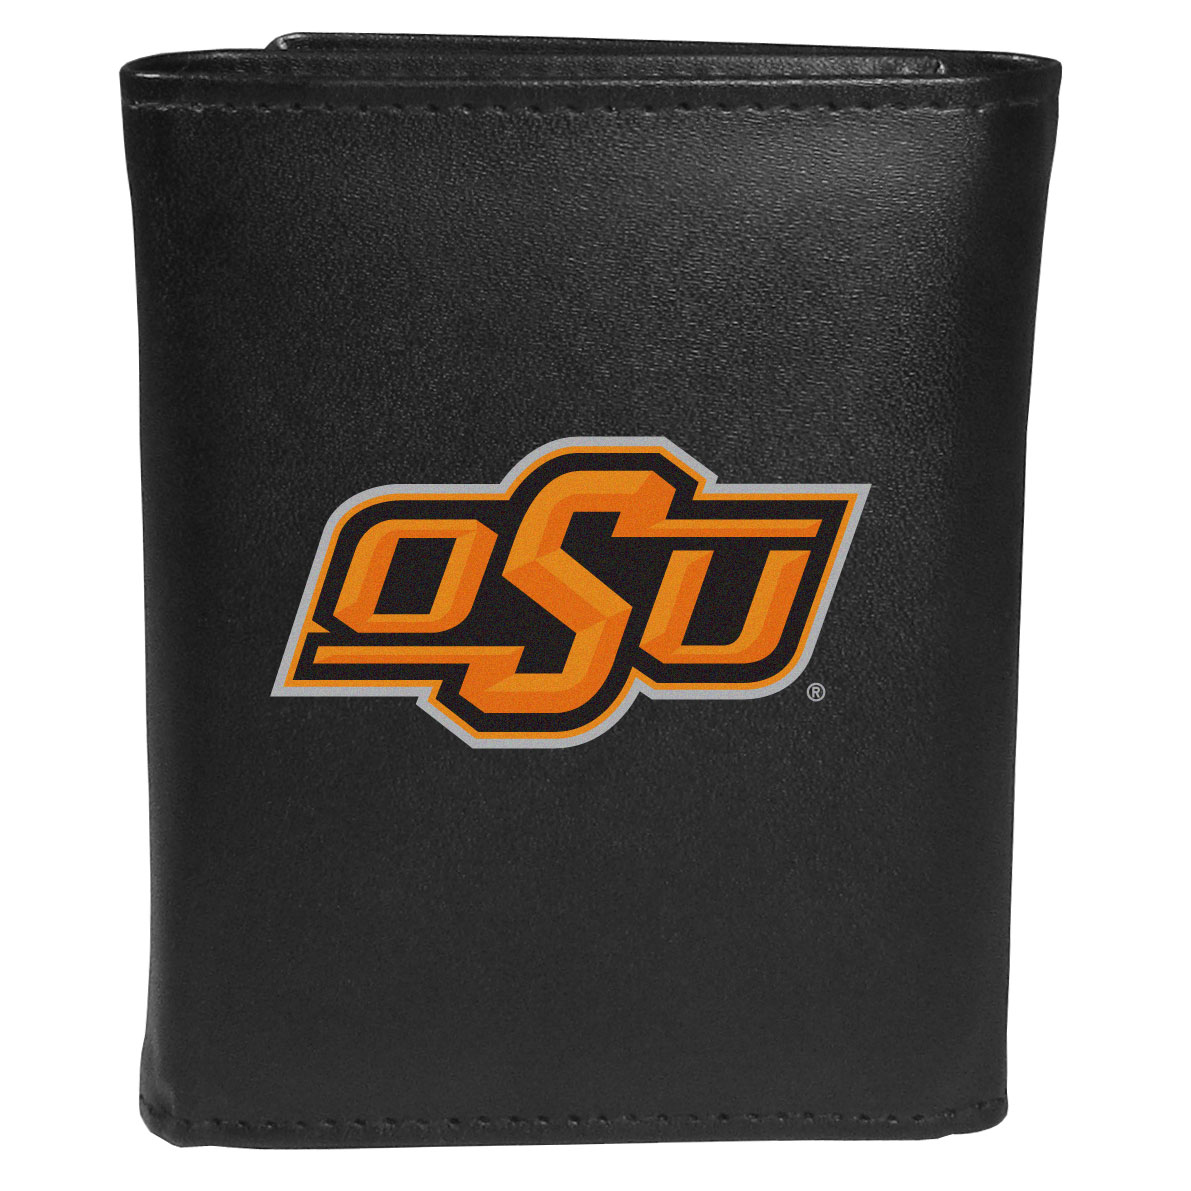 Oklahoma St. Cowboys Leather Tri-fold Wallet, Large Logo - Our classic fine leather tri-fold wallet is meticulously crafted with genuine leather that will age beautifully so you will have a quality wallet for years to come. This is fan apparel at its finest. The wallet is packed with organizational  features; lots of credit card slots, large billfold pocket, and a window ID slot. The front of the wallet features an extra large Oklahoma St. Cowboys printed logo.